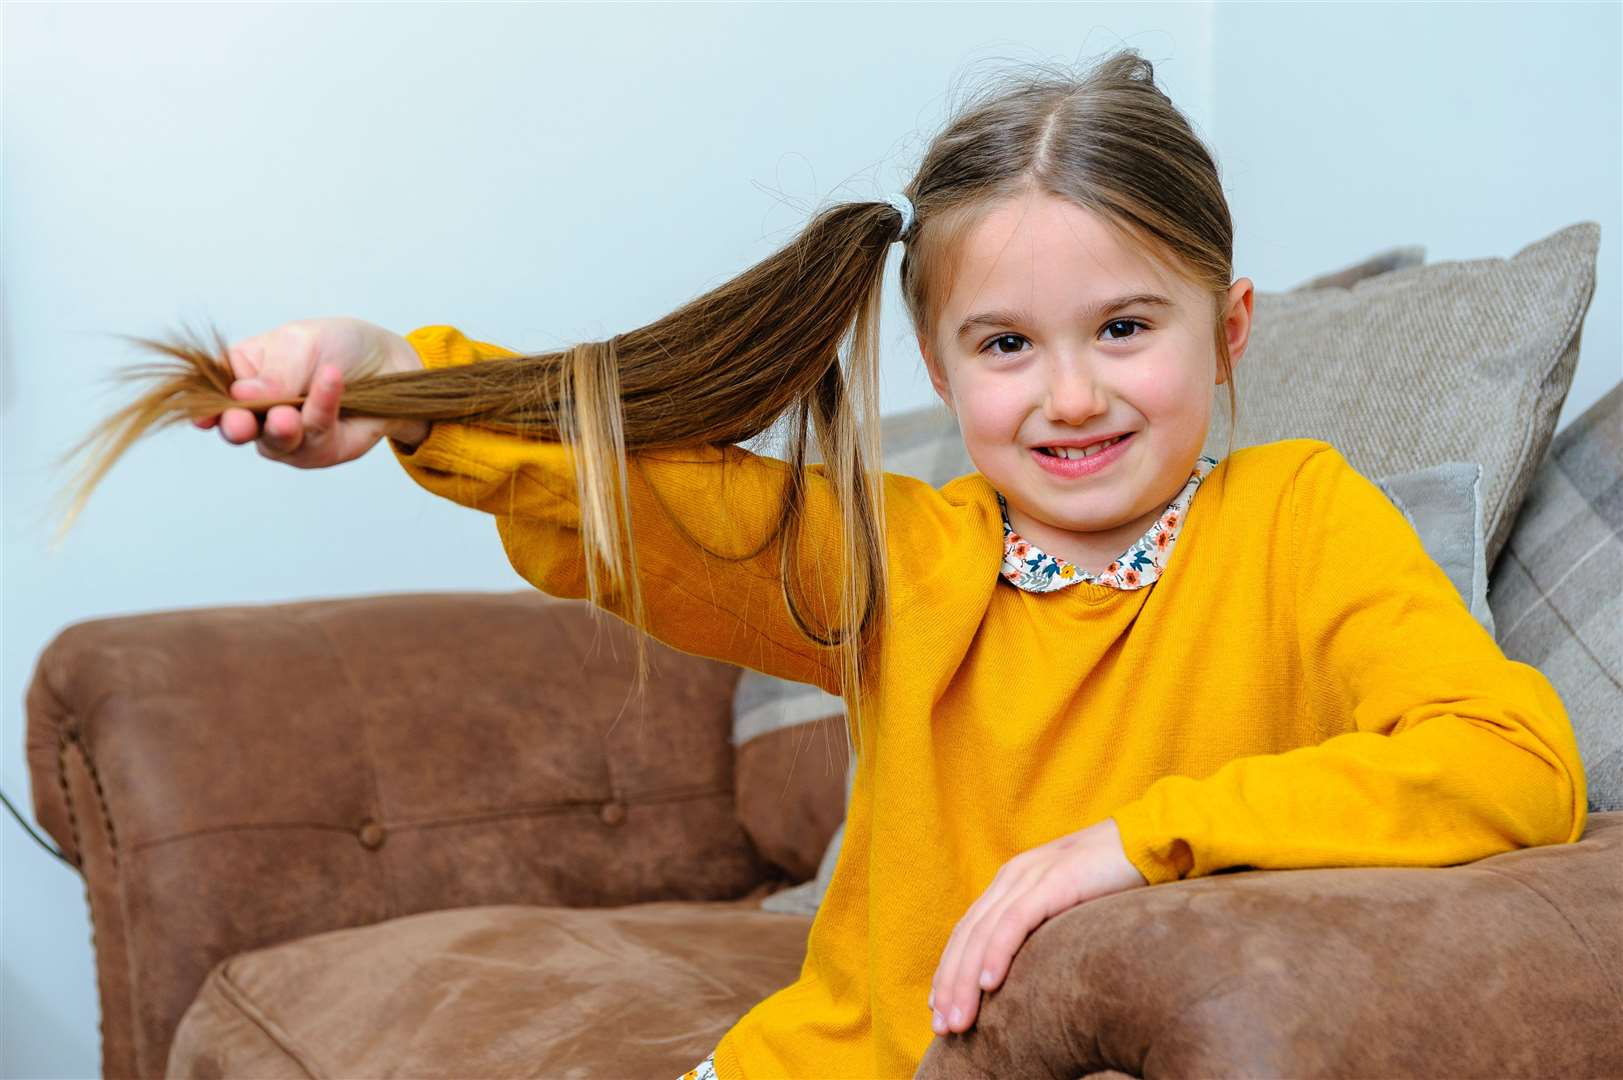 MAKING THE CUT: Seven-year-old Maisie will donate her hair to The Little Princess Trust. Picture by Mark Bullimore Photography.